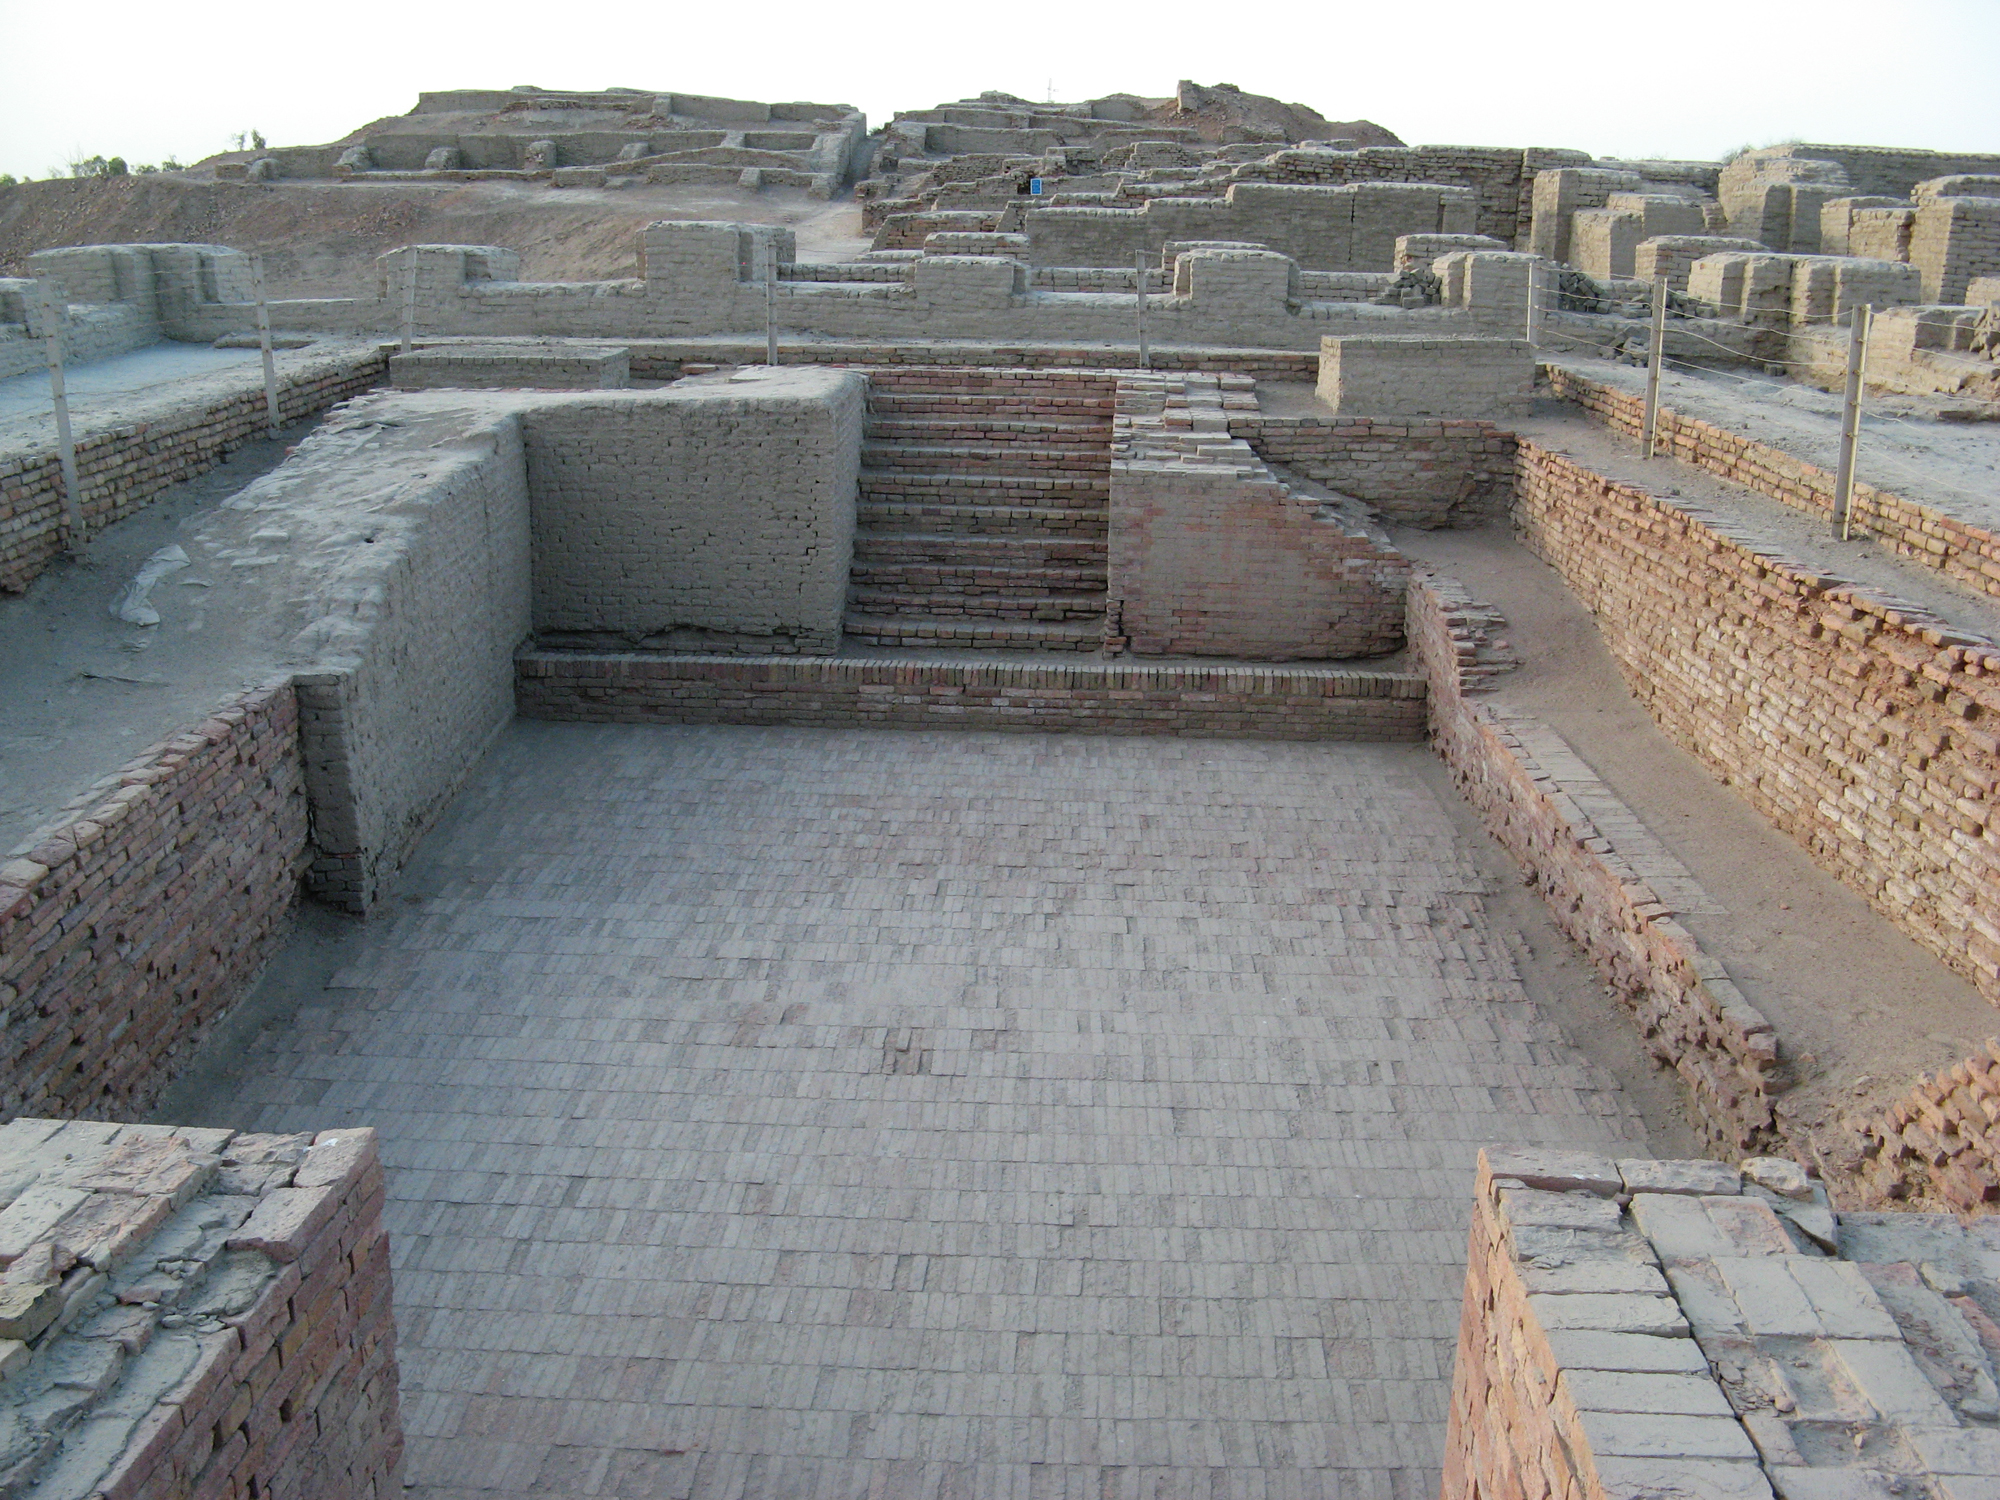 ancient nuclear weapons indus valley History's lost lesson: ancient nuclear war among indus valley civilizations reexamined page: 1.